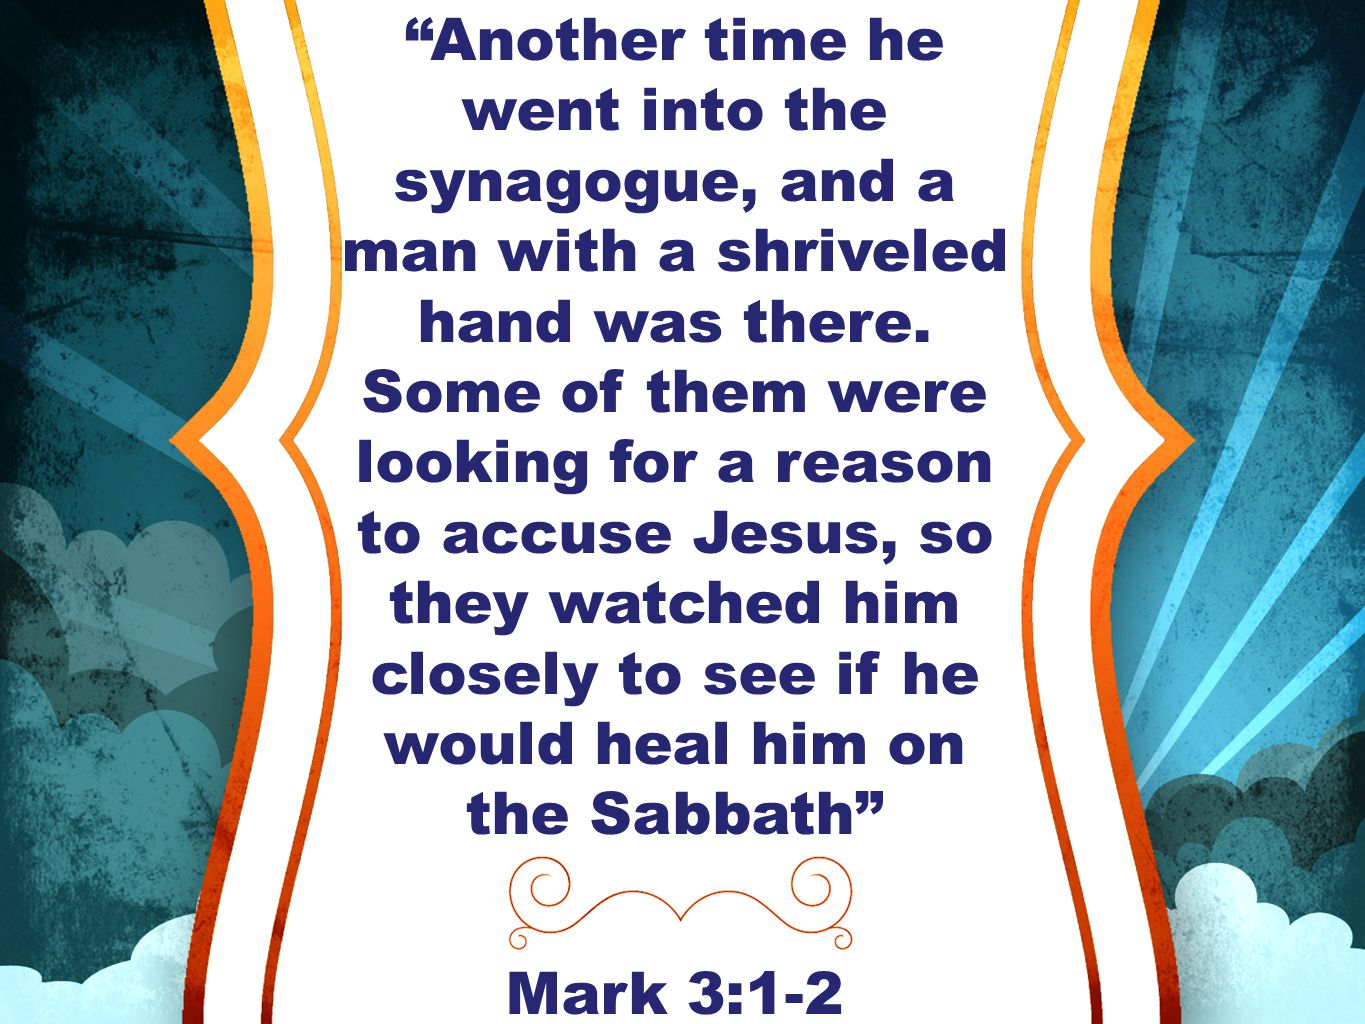 """""""Another time he went into the synagogue, and a man with a shriveled hand was there. Some of them were looking for a reason to accuse Jesus, so they w"""